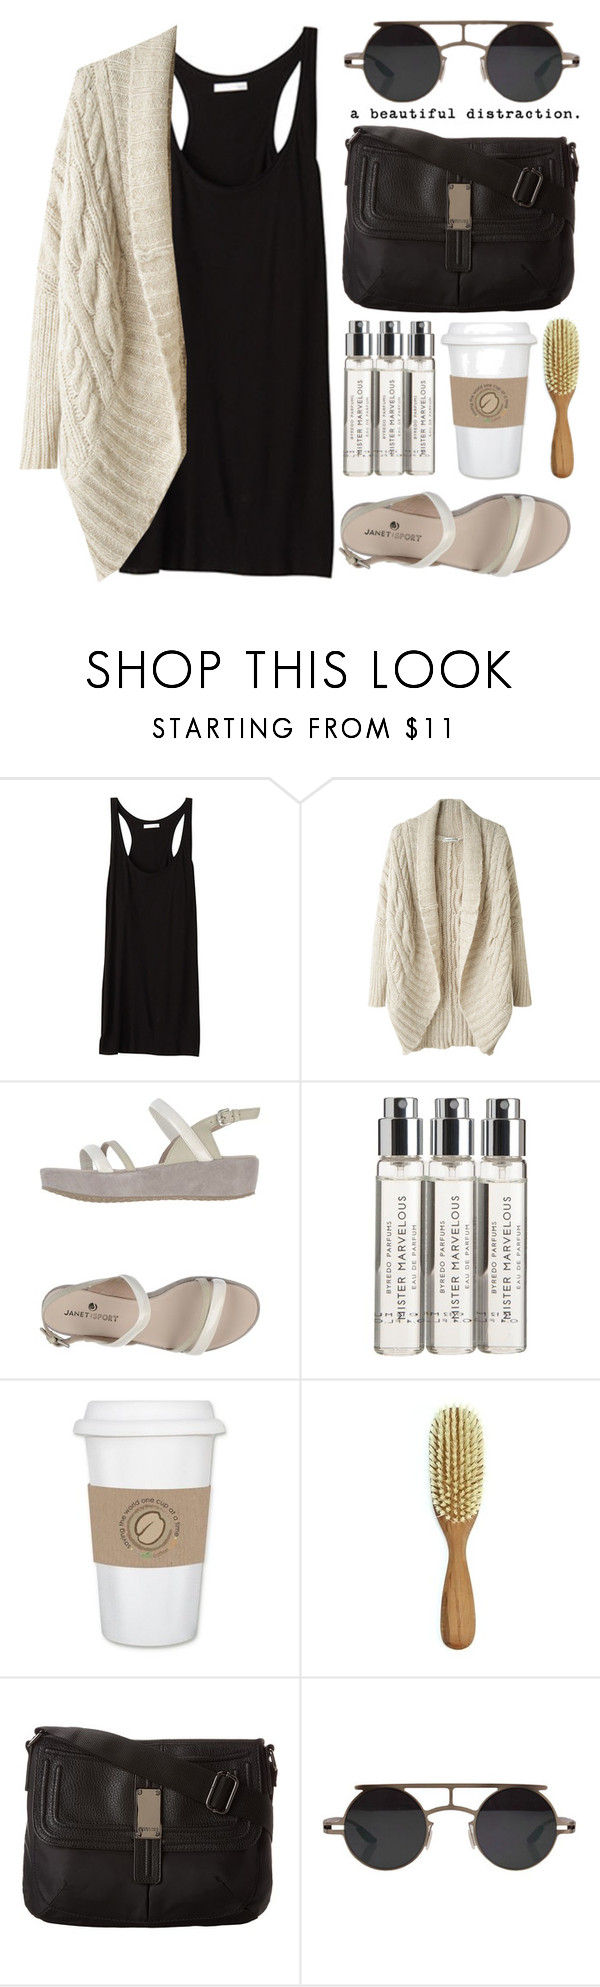 """A Beautiful Distraction // For @vannyroxx (2/10)"" by raelee-xoxo ❤ liked on Polyvore featuring Tsumori Chisato, Janet Sport, Byredo, WALL, Kenneth Cole Reaction, Retrò, raeleespenguin, amberzoelookhere and TalisLittleTag"